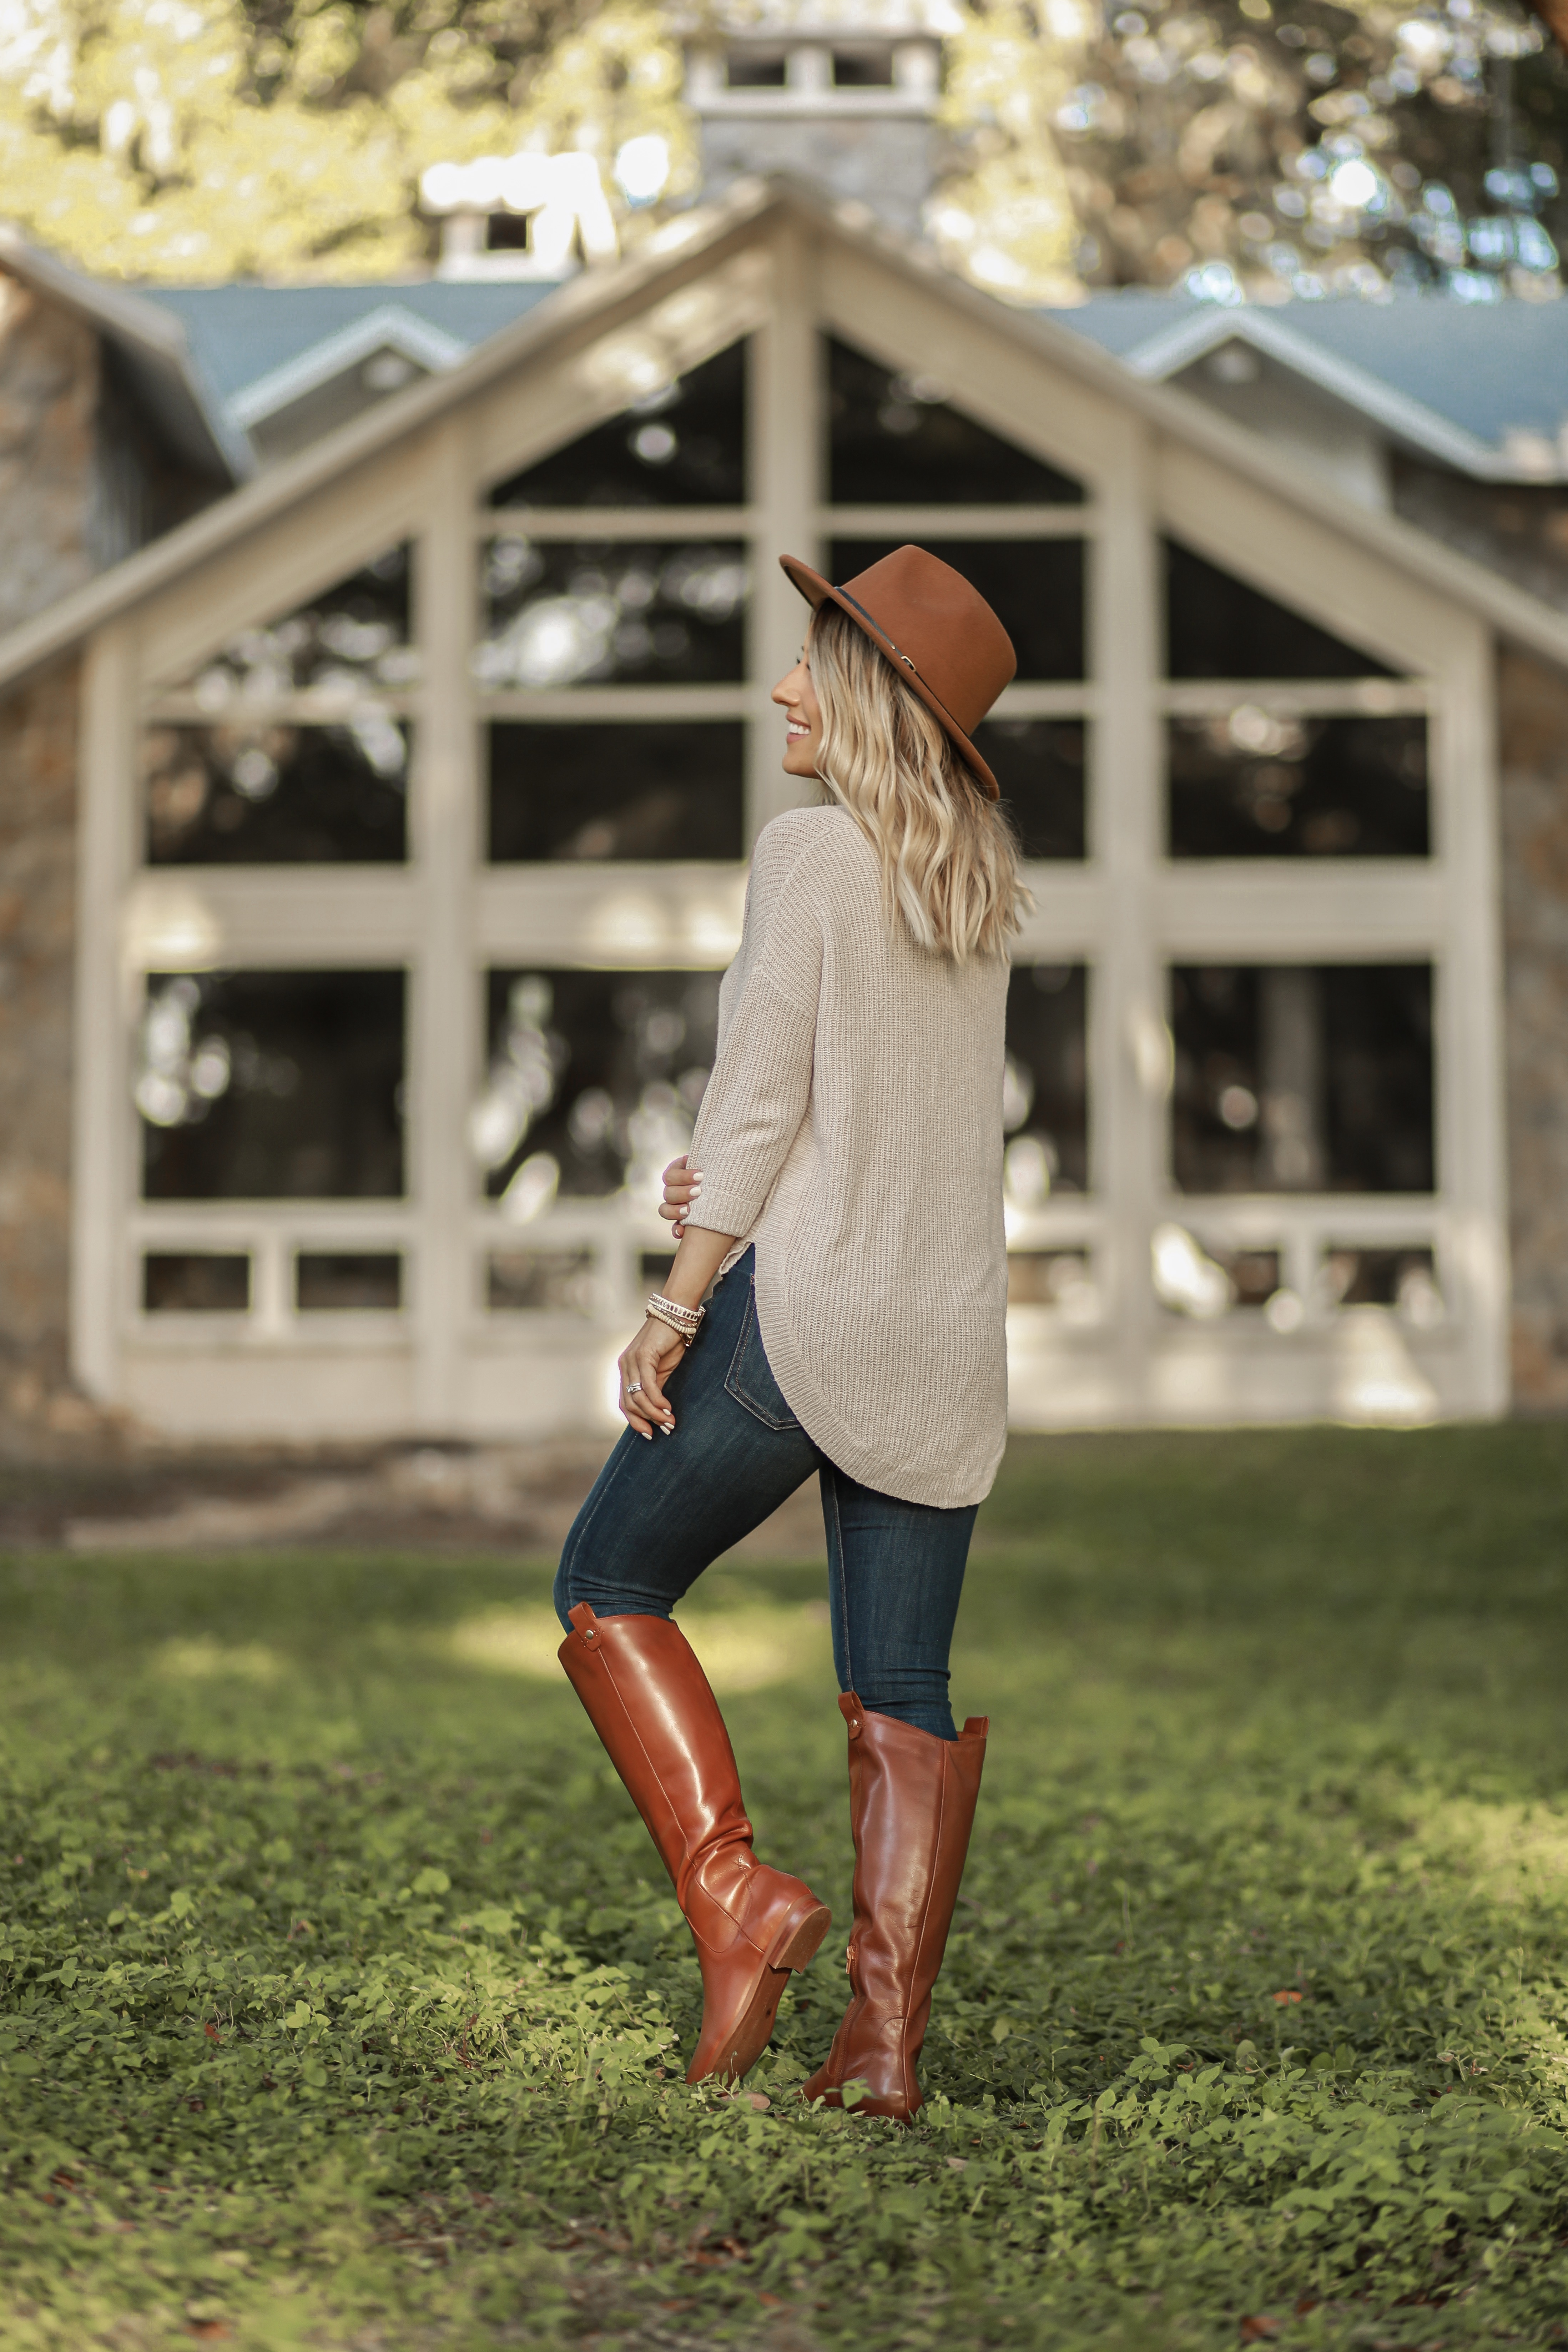 CLASSIC COMFY FALL OUFIT TUNIC SWEATER BROWN RIDING BOOTS LAURA BEVERLIN HOUSE4